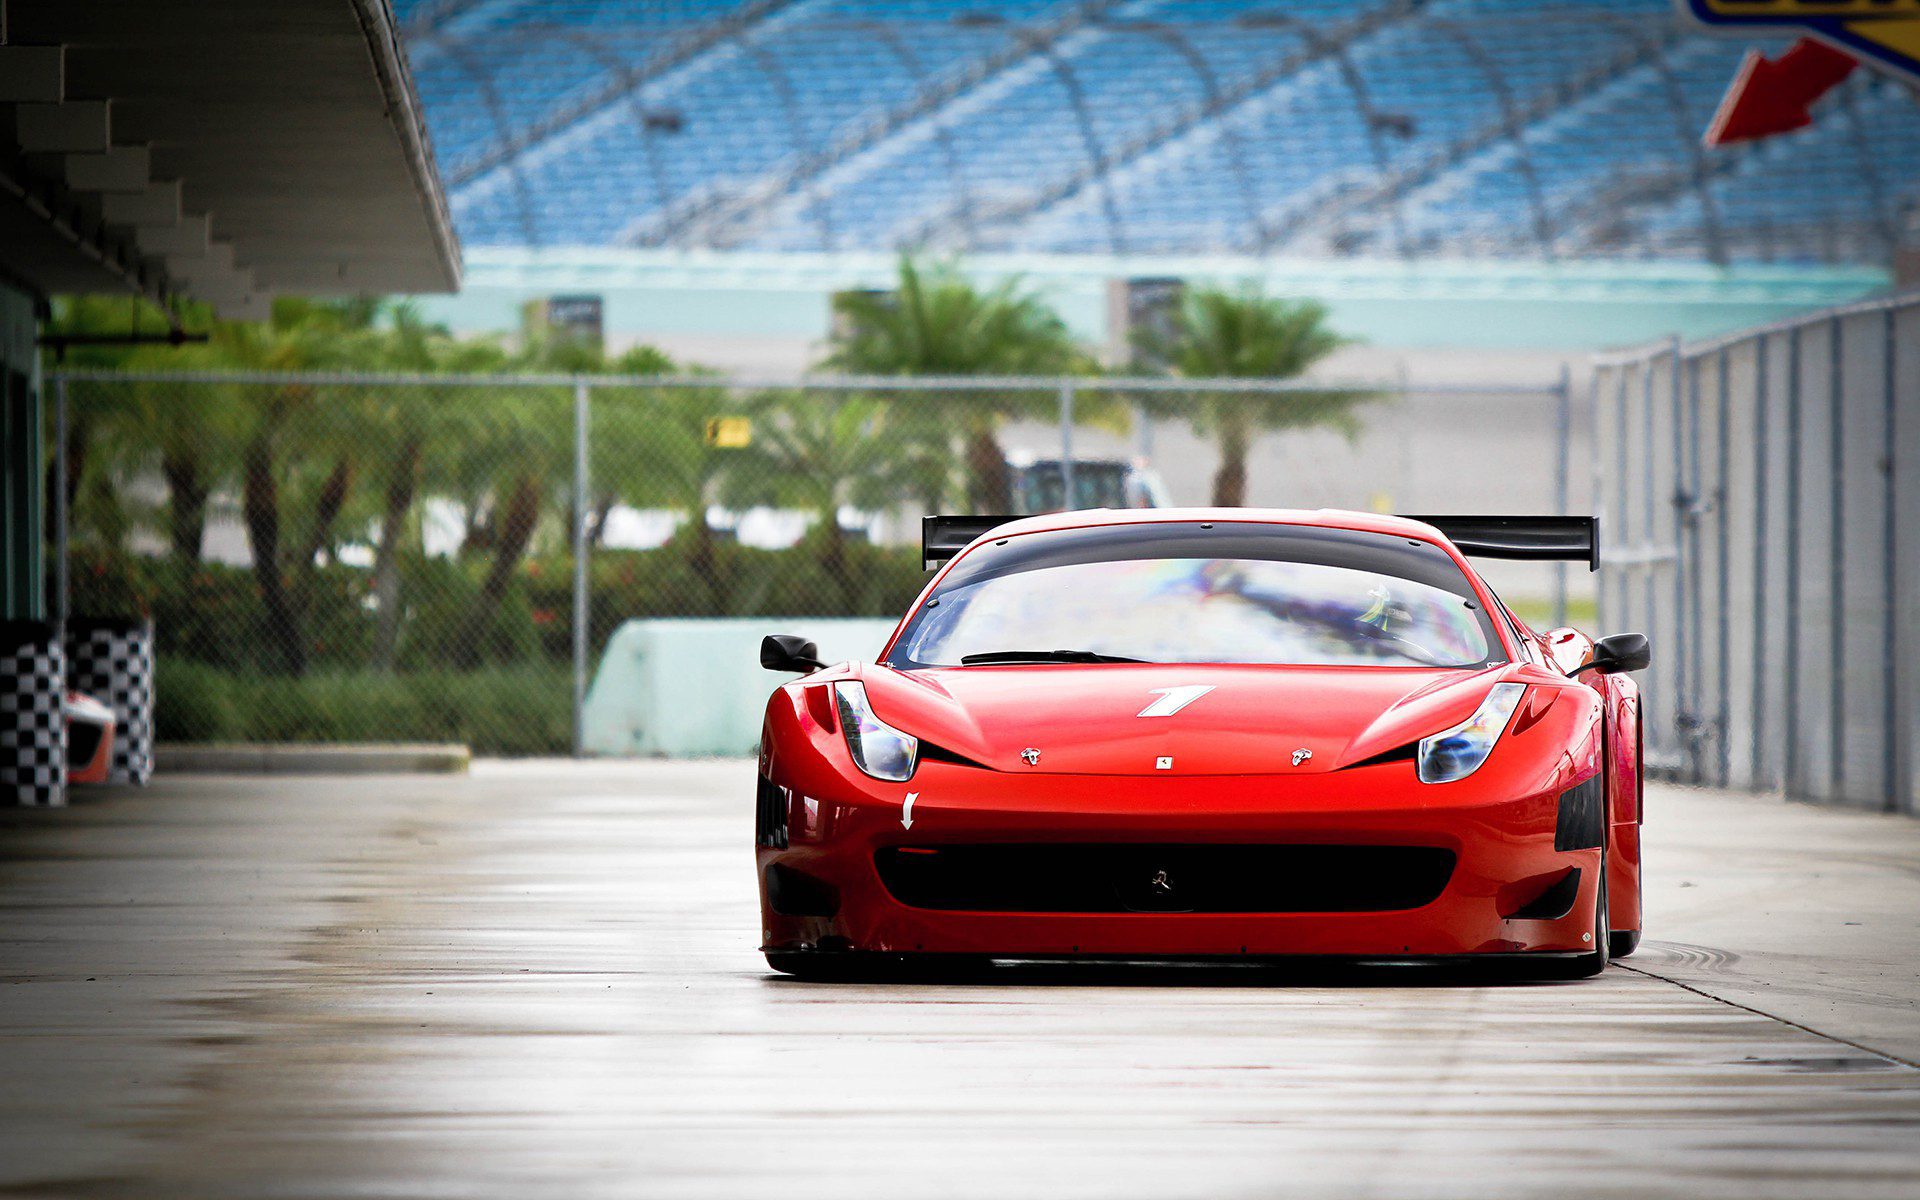 Ferrari HQ wallpapers and pictures - Page 26